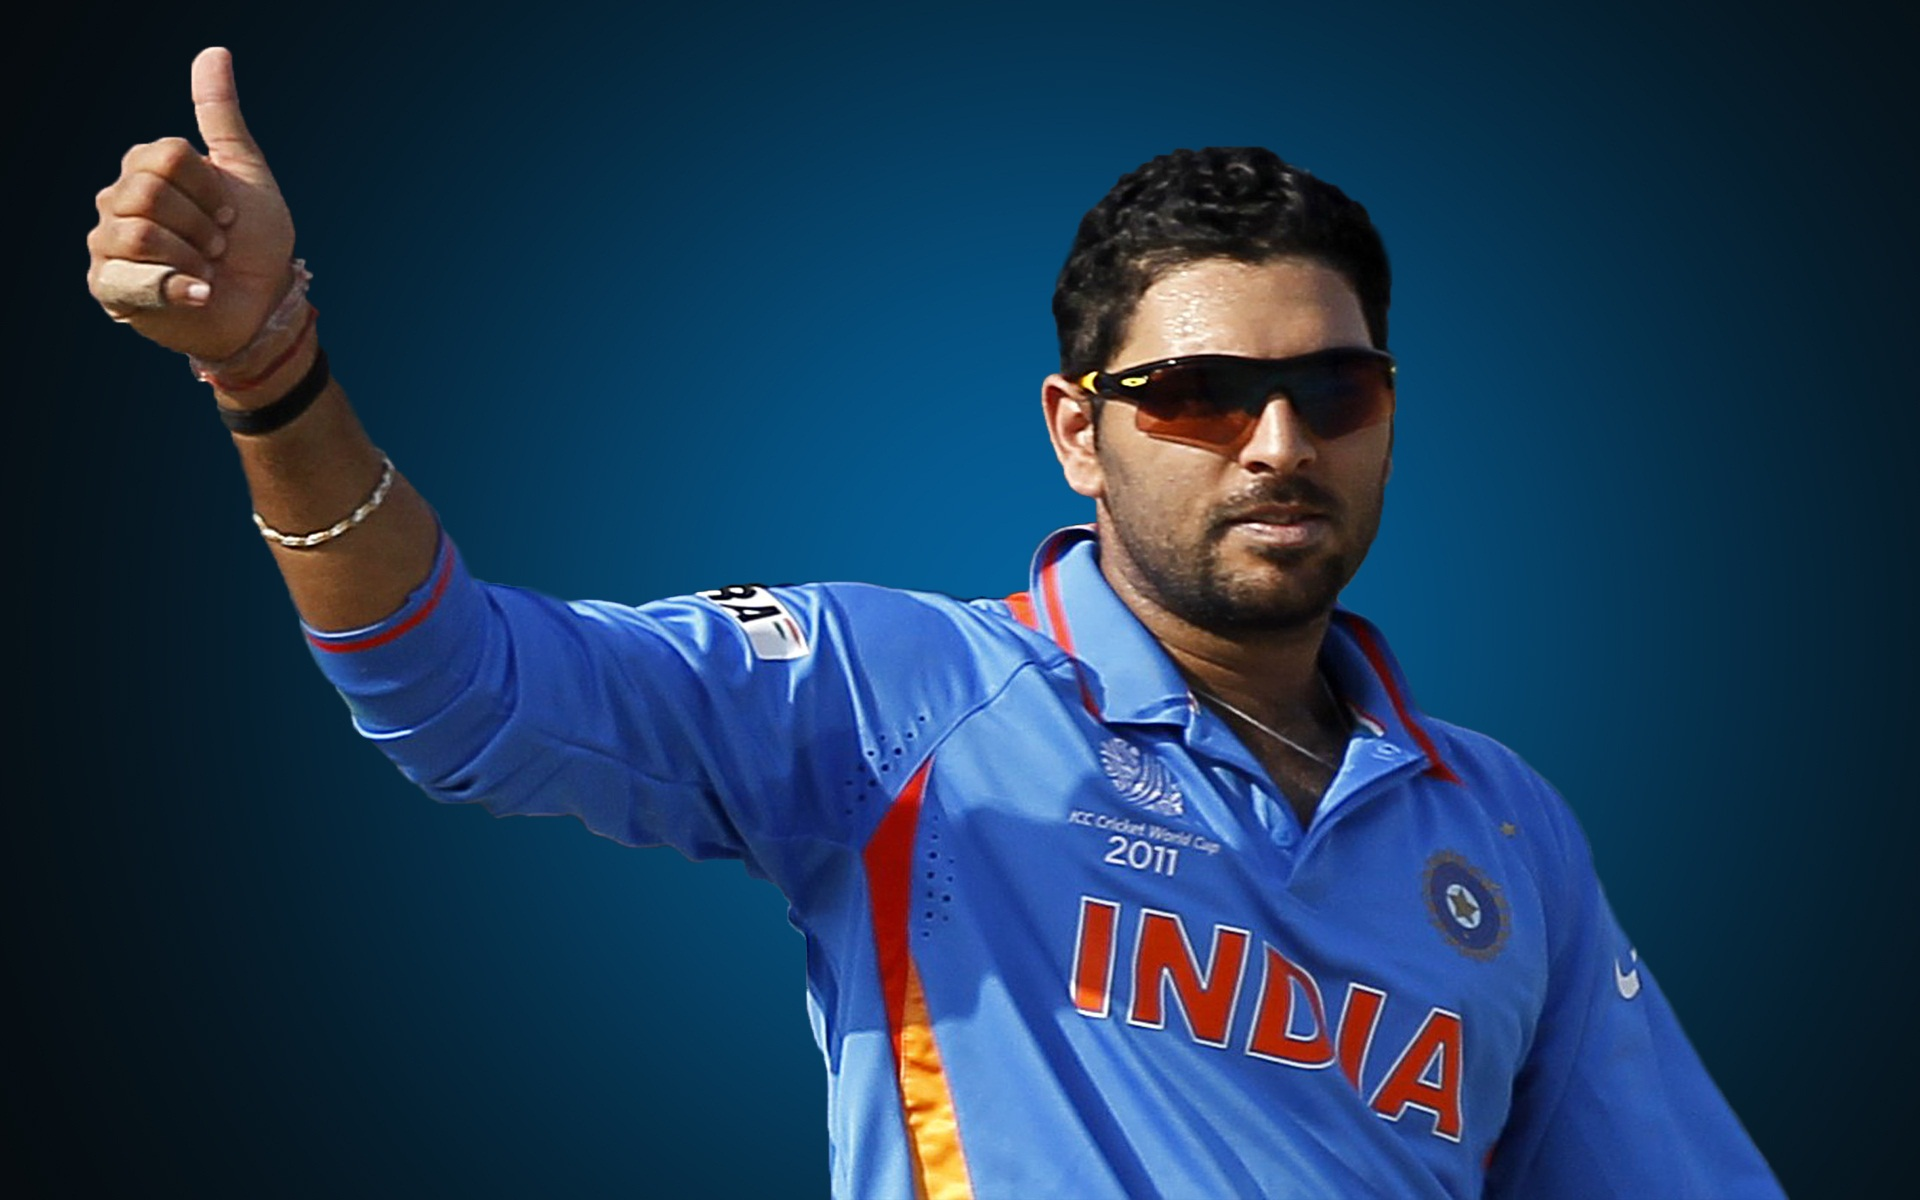 Indian Cricket Team Batsman Yuvraj Singh: Top 10 Richest Cricketers In The World 2018